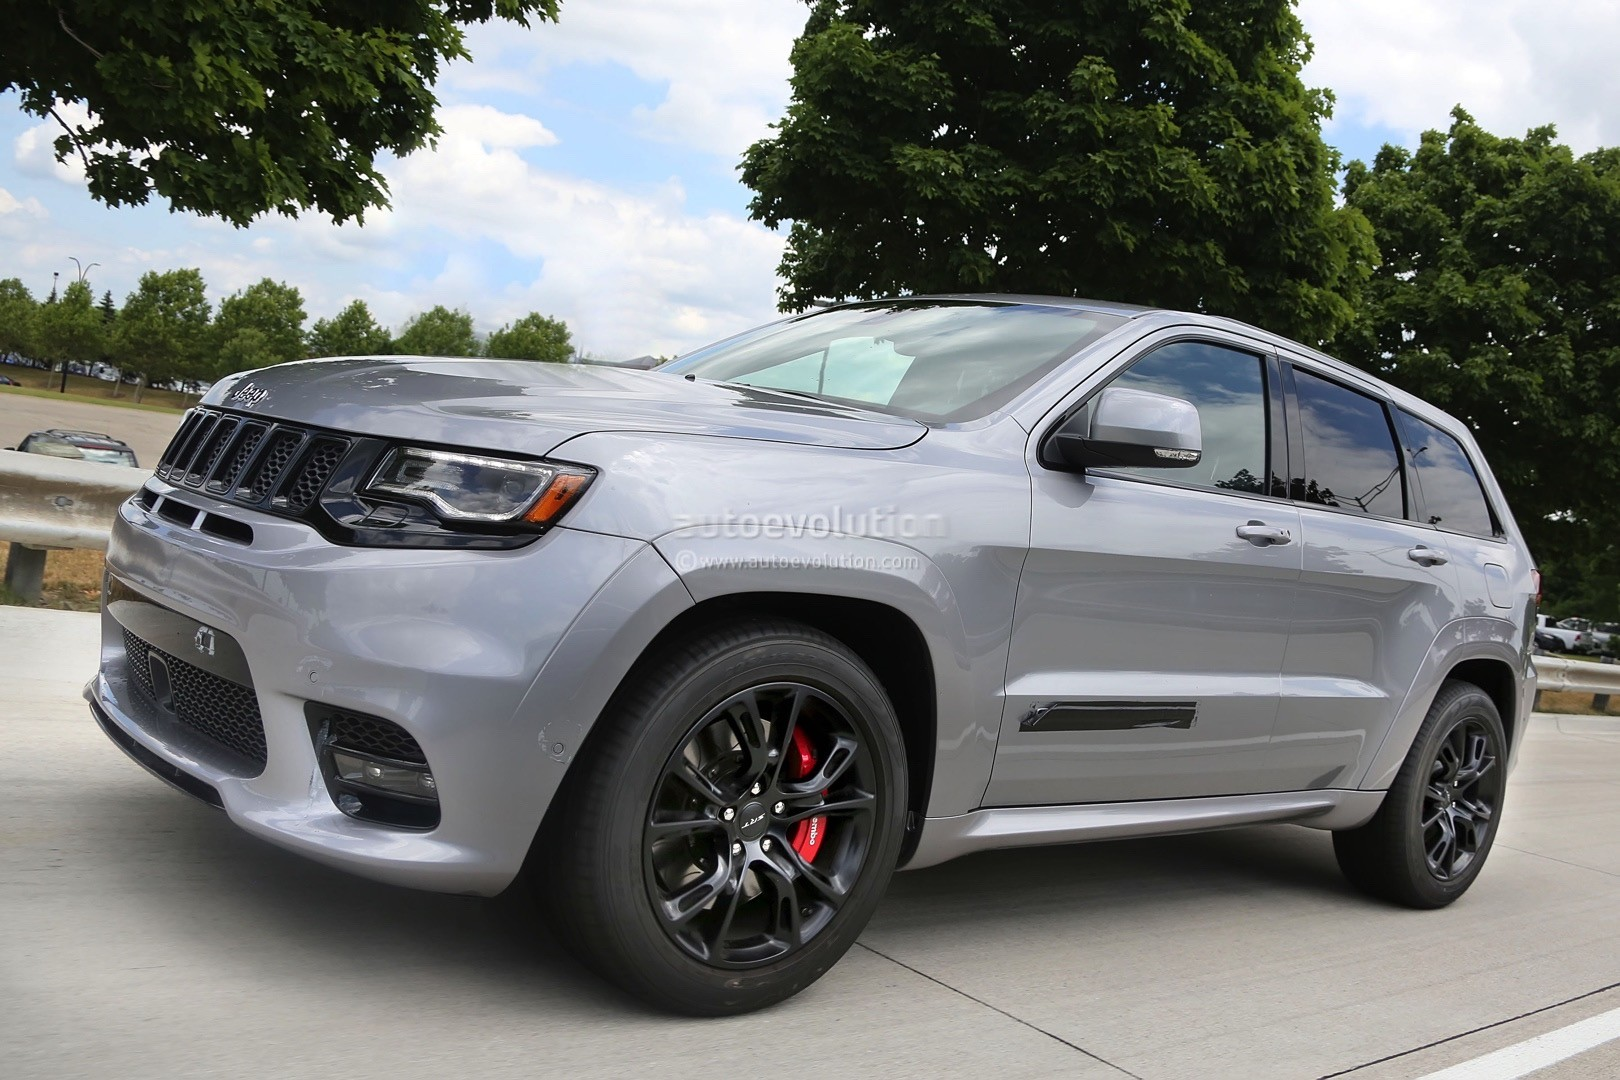 2018 jeep grand cherokee trackhawk spied looks ready to pounce autoevolution. Black Bedroom Furniture Sets. Home Design Ideas